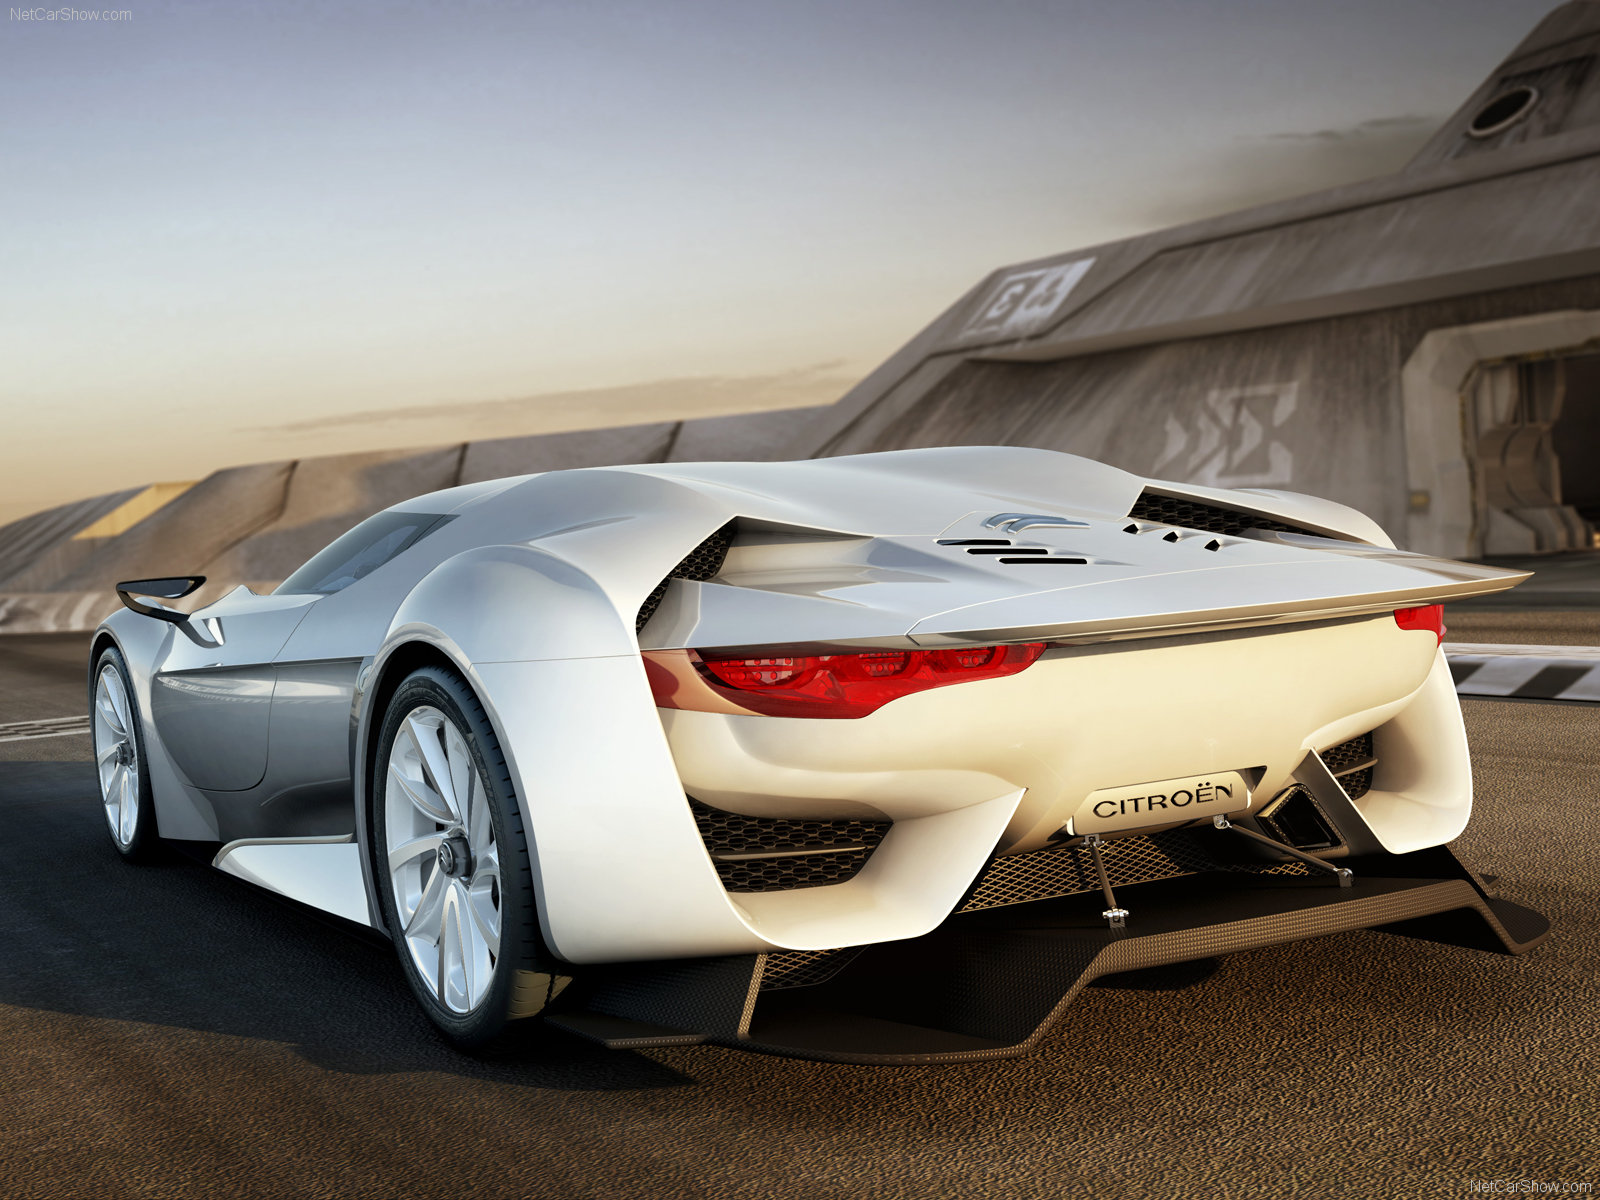 Awesome Car Wallpapers for Iphone Large Hd Wallpaper Database 1600x1200px